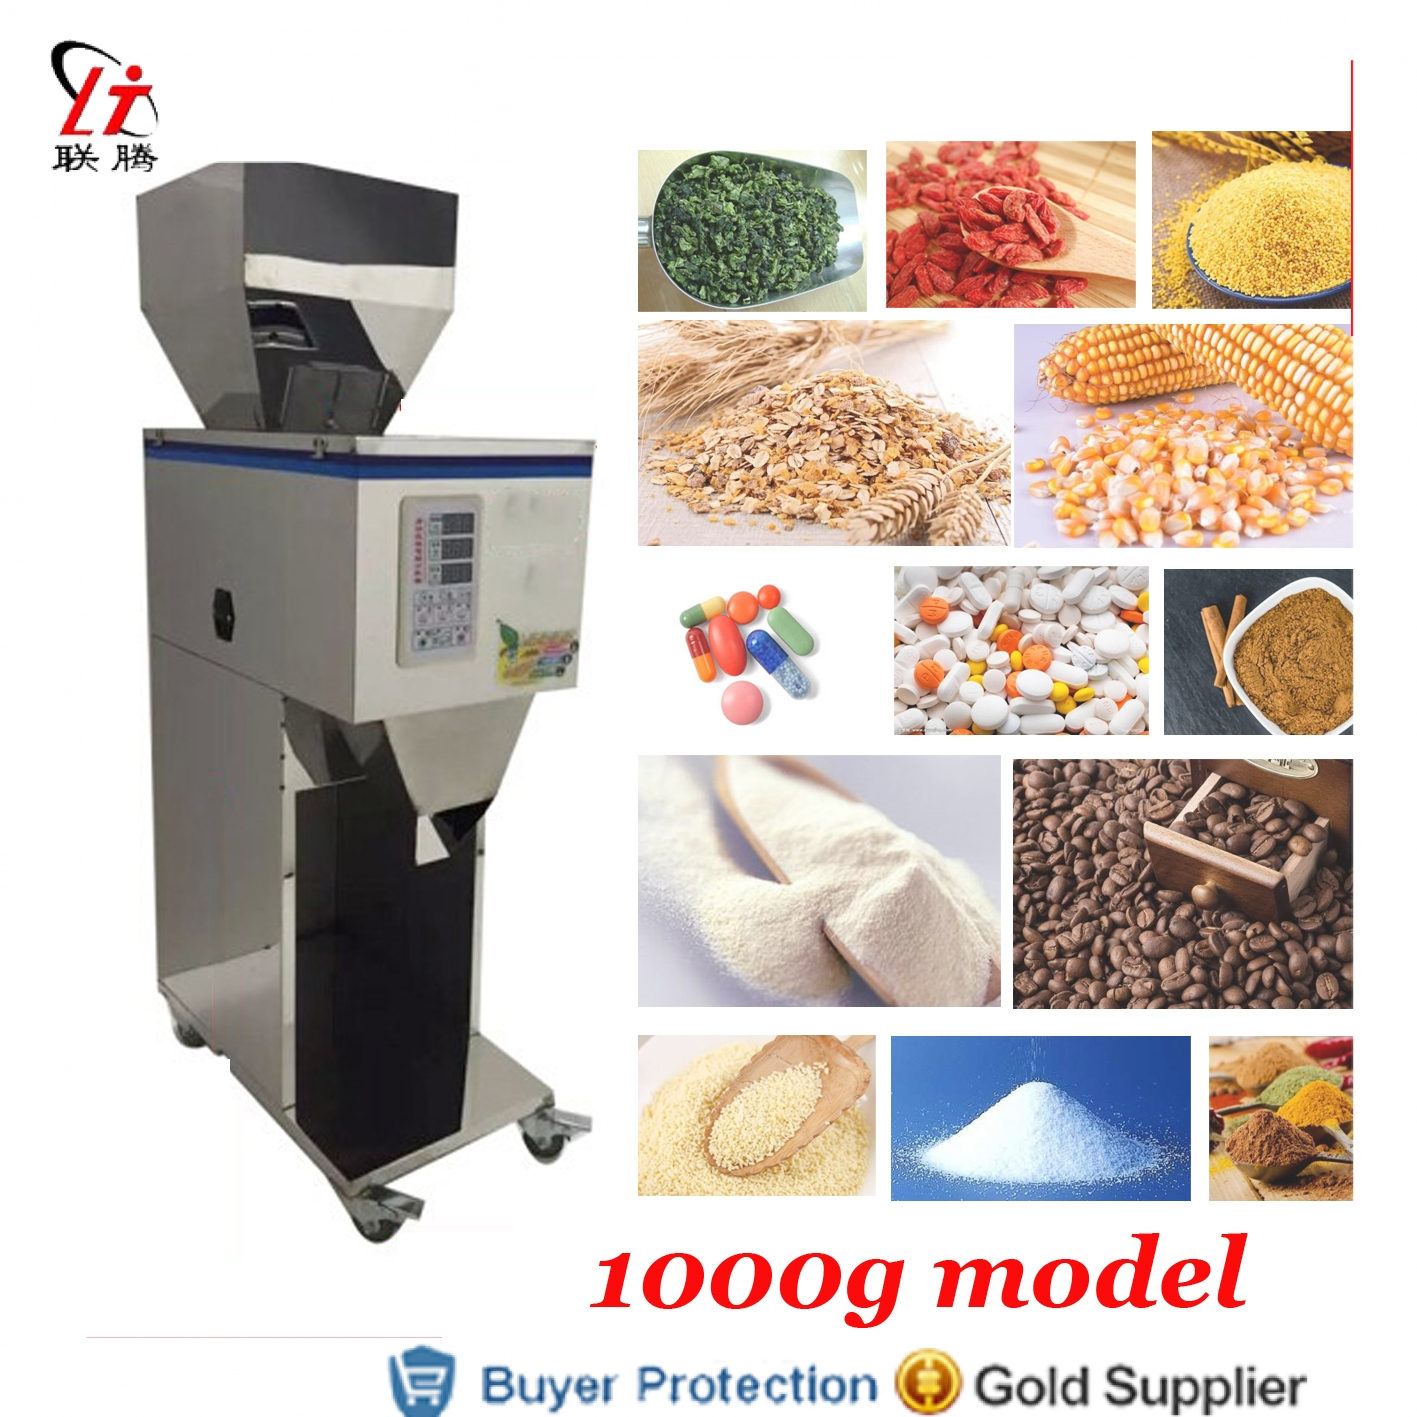 1000g Doser Rice Powder Corn Grain Weighing And Filling Machine Tea Leaf Medicine Seed Salt Packing